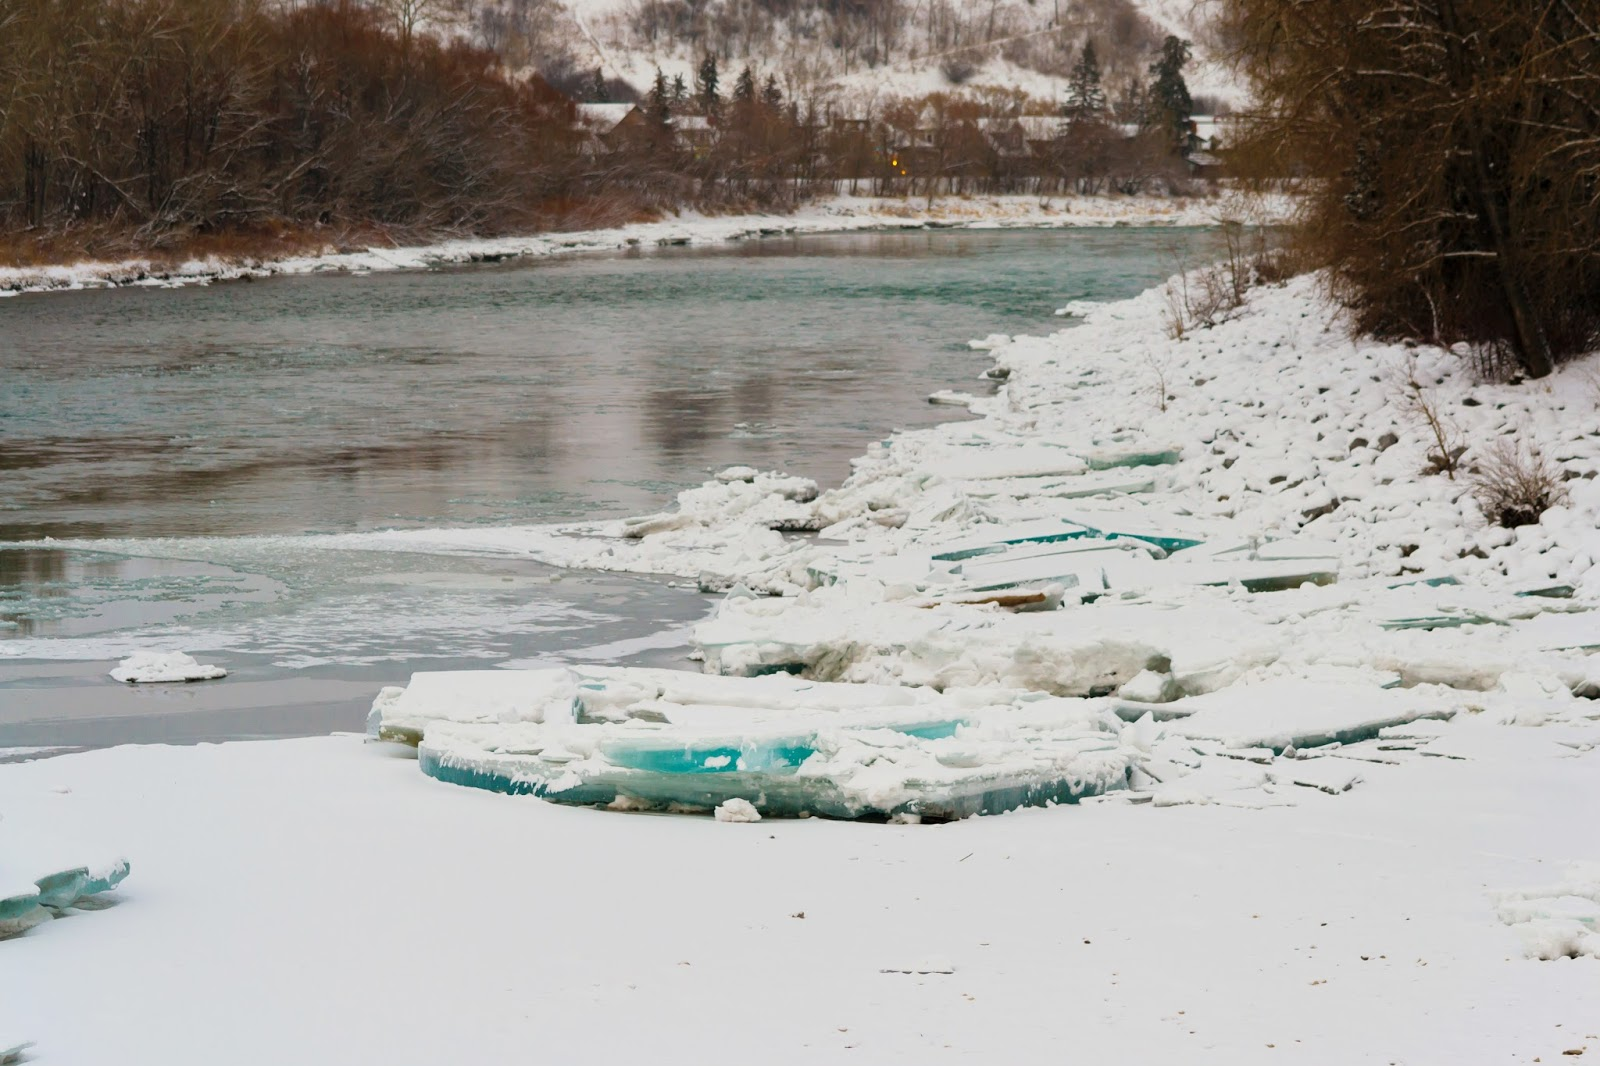 Calgary River with floating glacier pieces